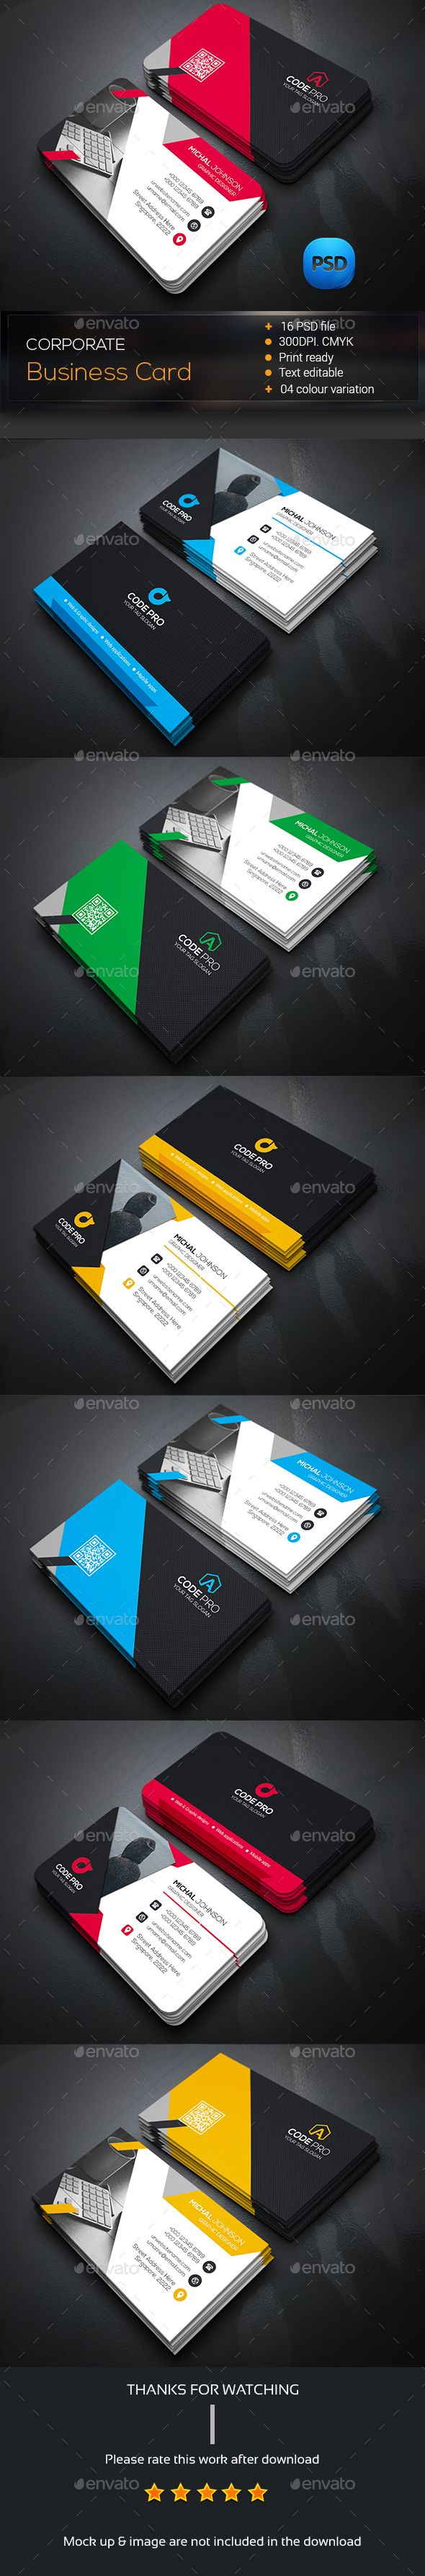 16 best business card army images on pinterest